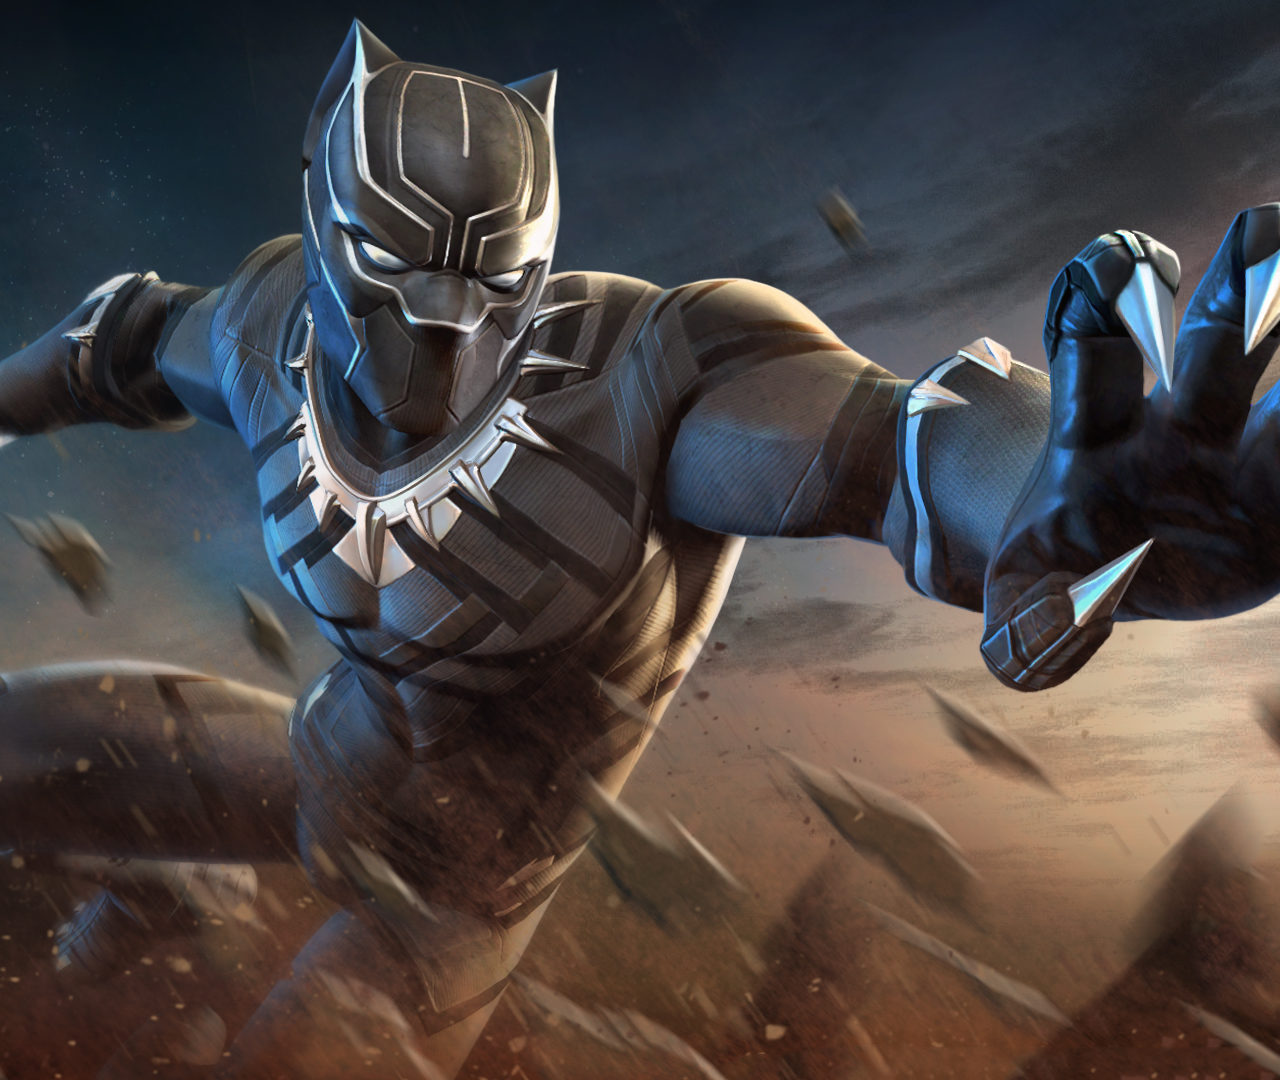 Black Tesla Model S 2015 4k Hd Wallpaper: Black Panther Marvel Contest Of Champions Wallpapers